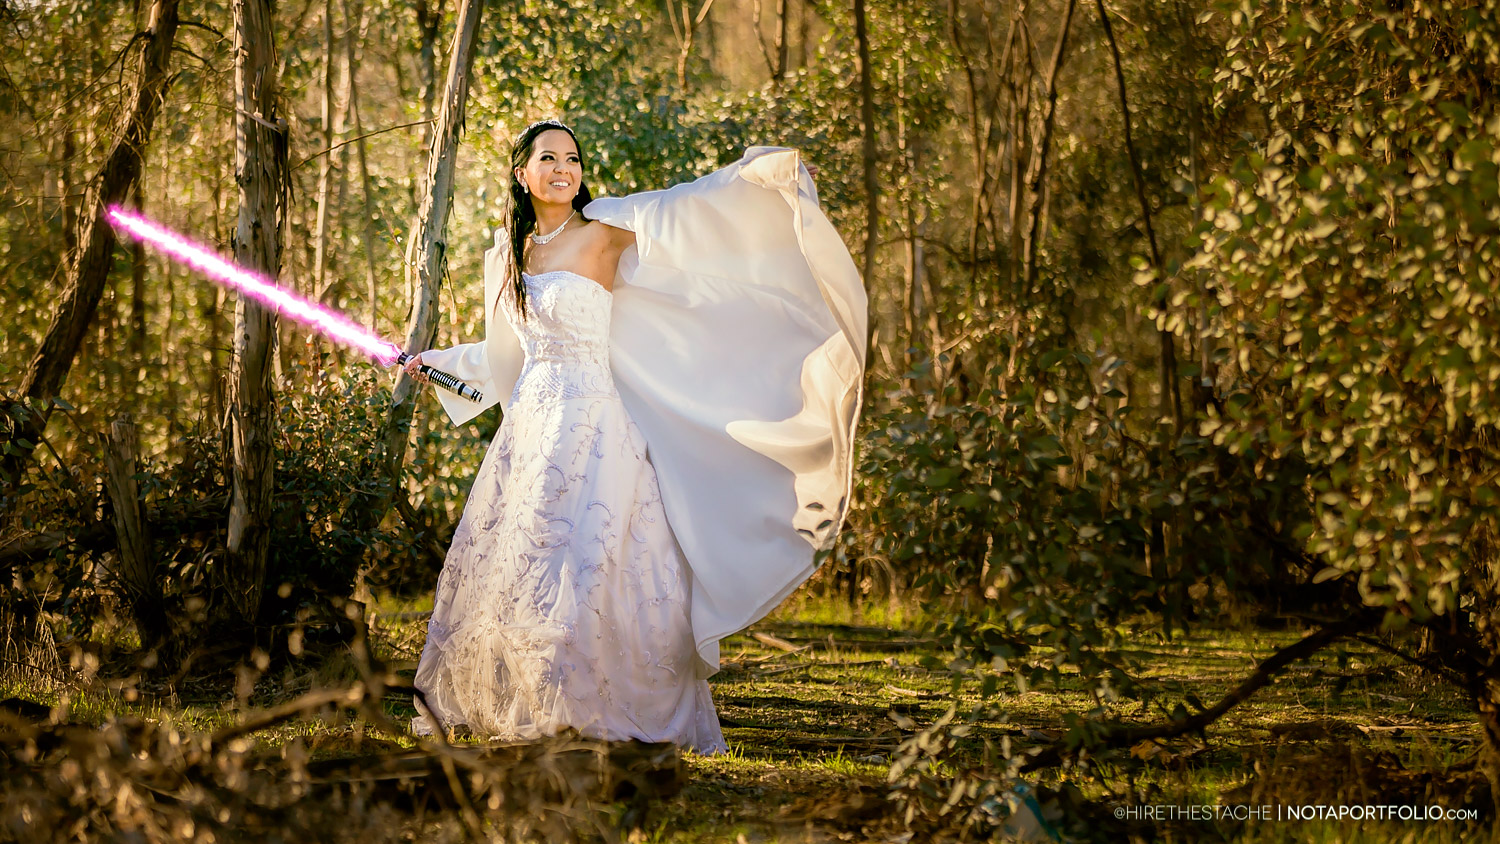 Star Wars Wedding On 5 000 Budget Features Lightsabers